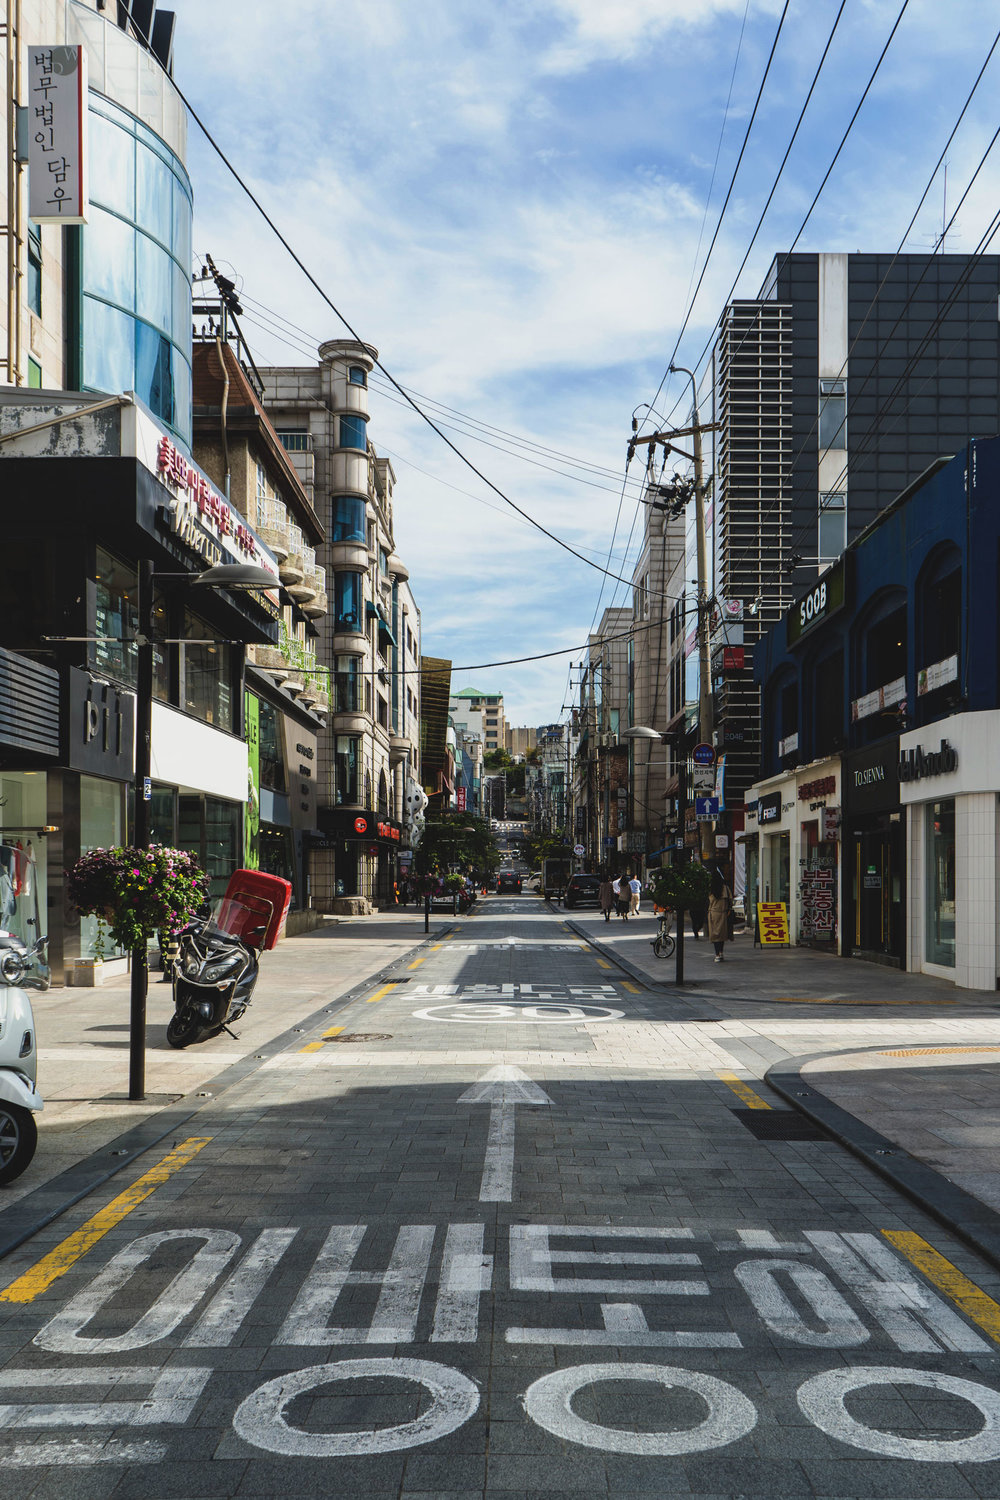 A street in Apkujeong